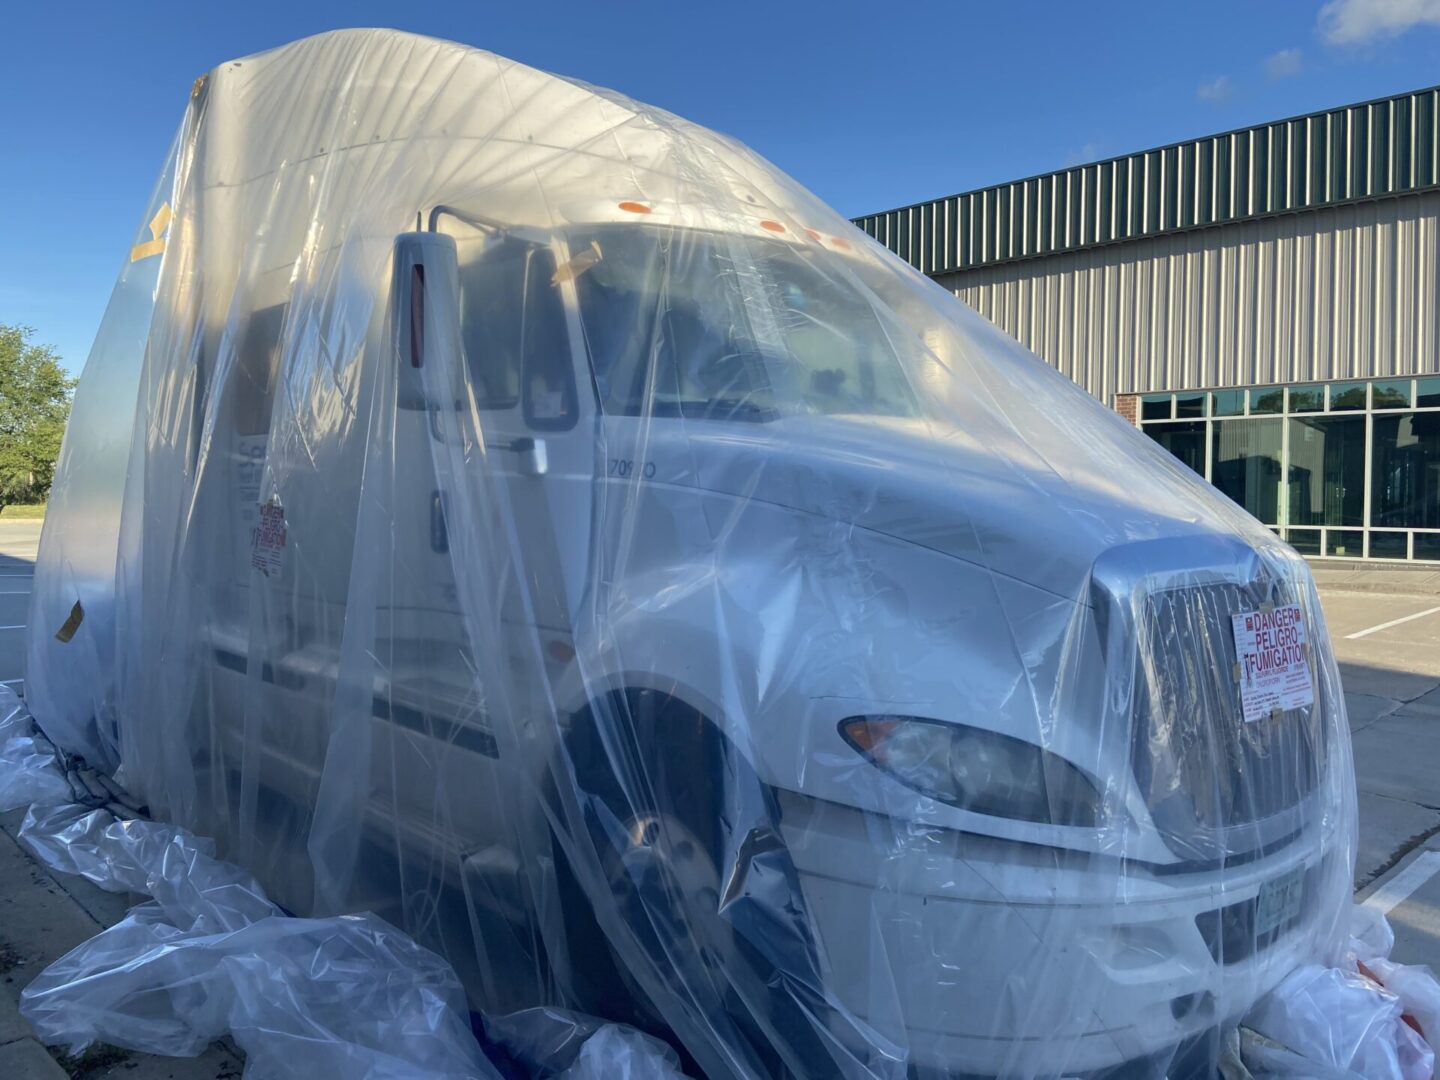 Fumigate your Semi-Cab for Bed Bugs